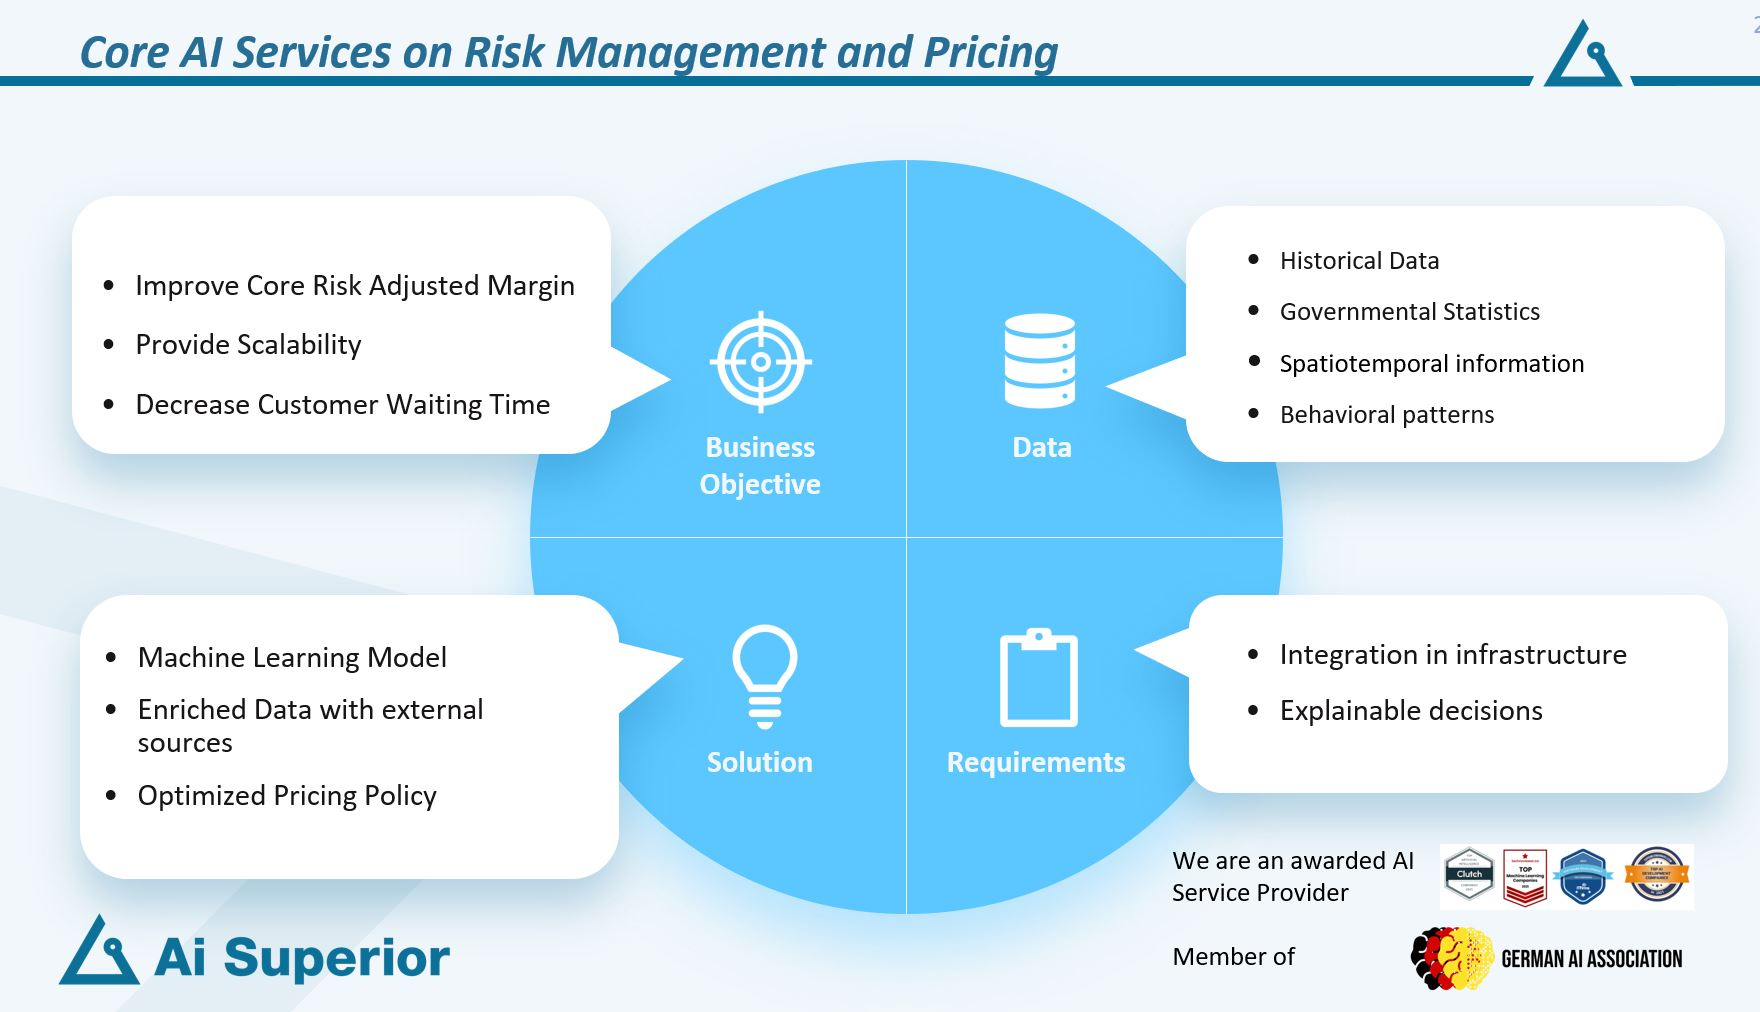 Insurance Offering Core AI Services on Risk Management and Pricing